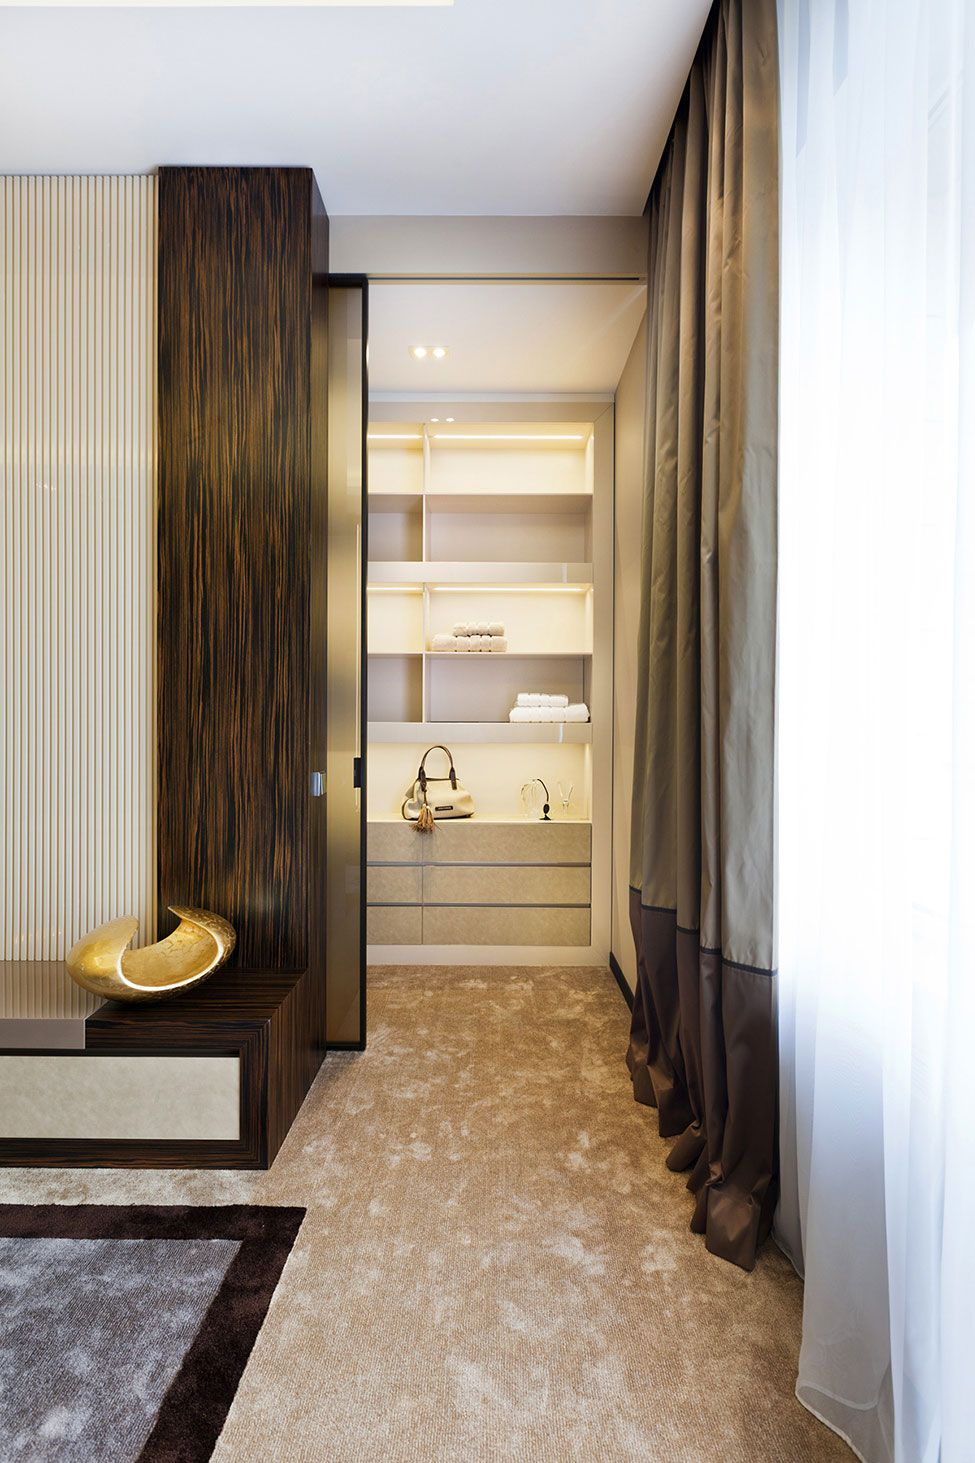 Shape of art deco by ng studio 17 luxury interior dressing rooms